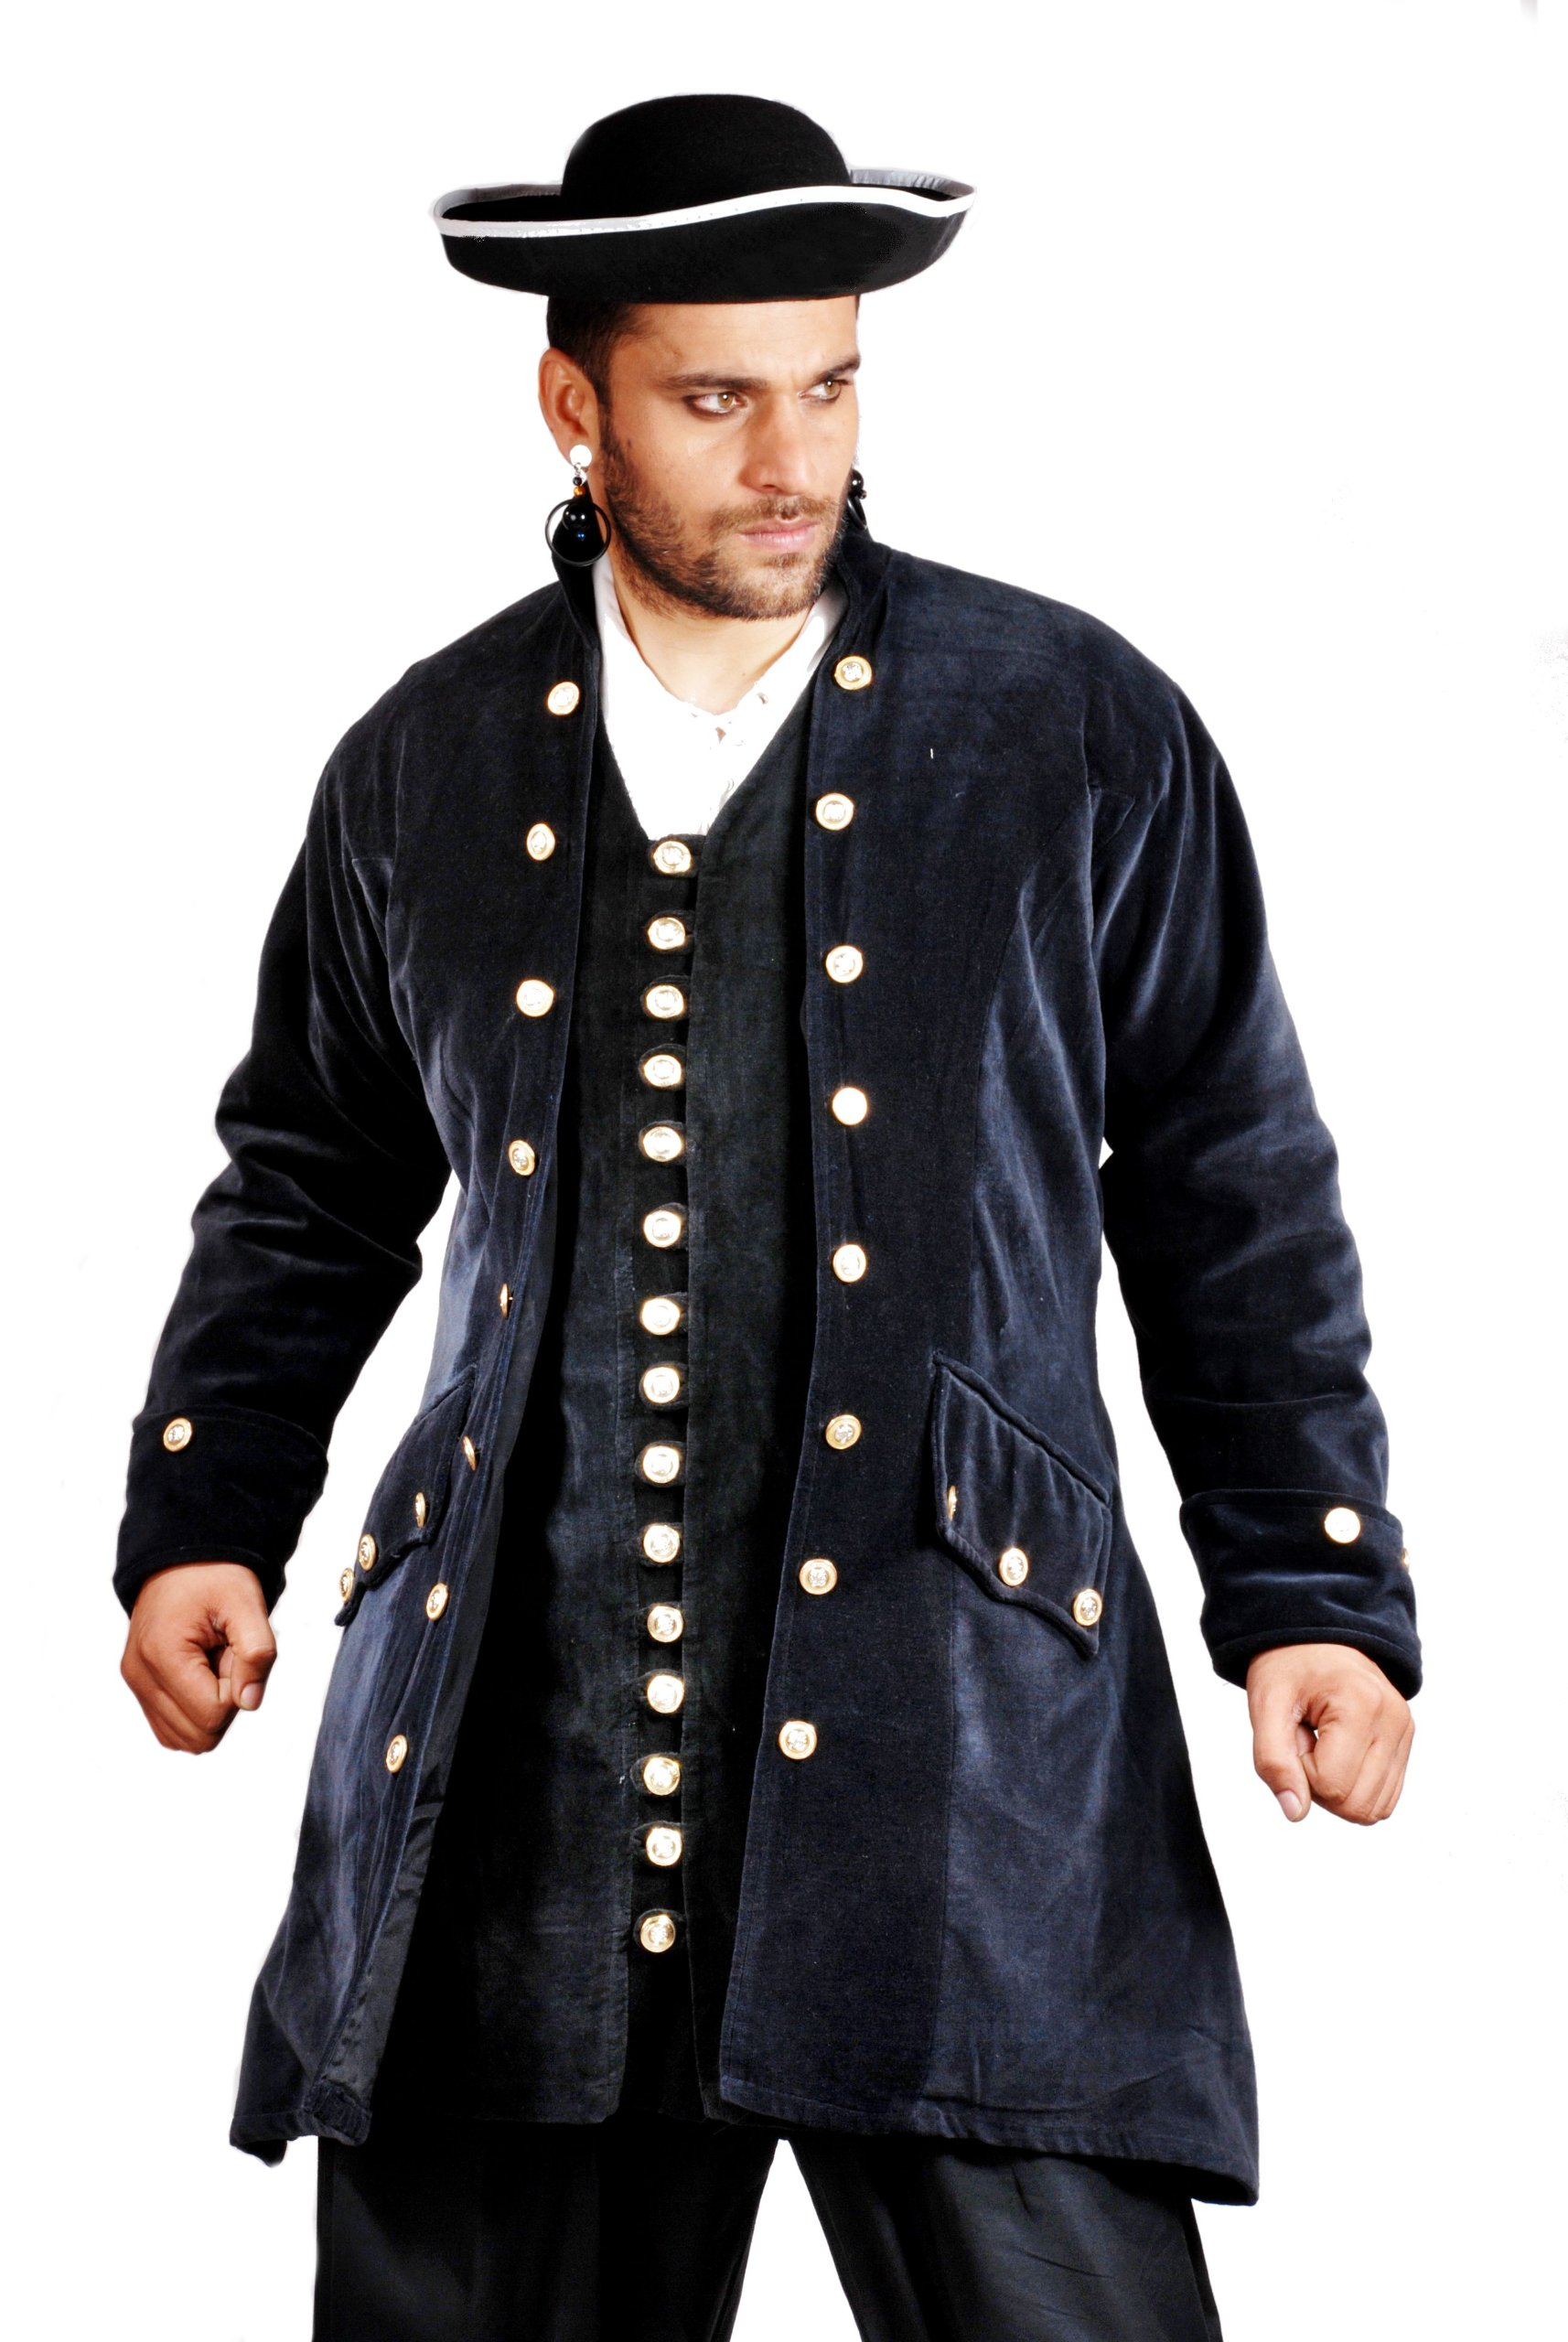 Captain De Lisle Coat - Black Cotton Velvet - Size XX-Large by The Pirate Dressing (Image #1)